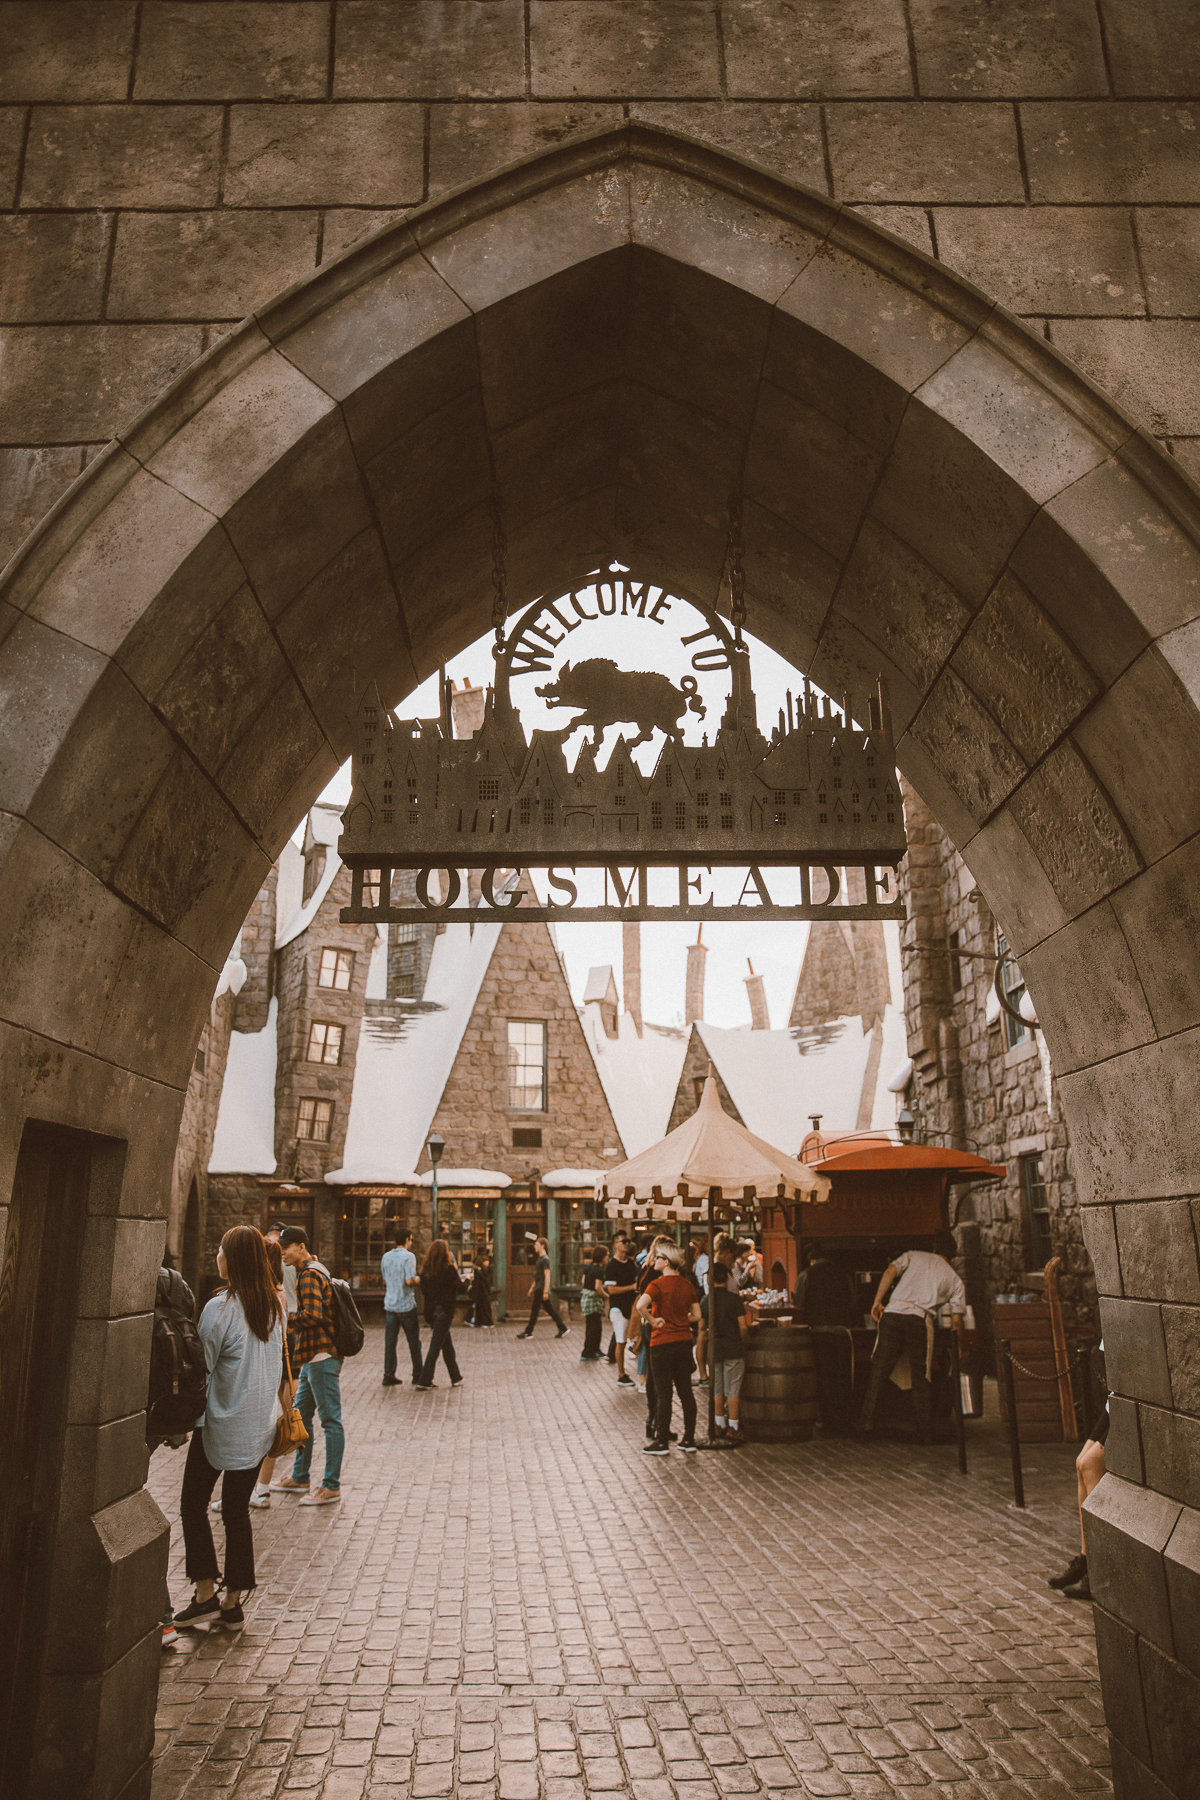 California Harry Potter World Hogsmeade by photographer Ailera Stone